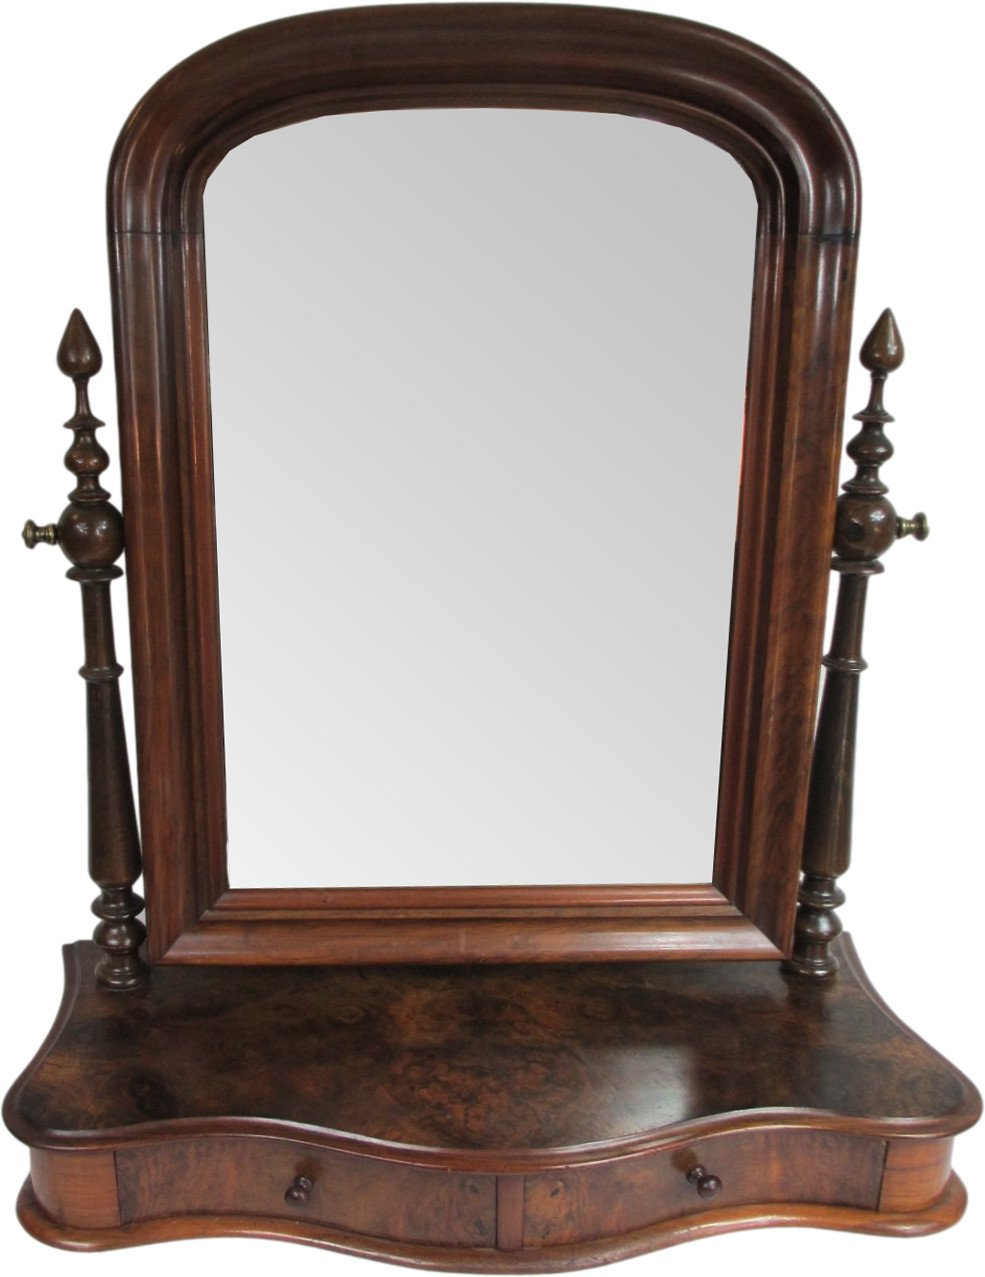 Dressing Table, 19th C.